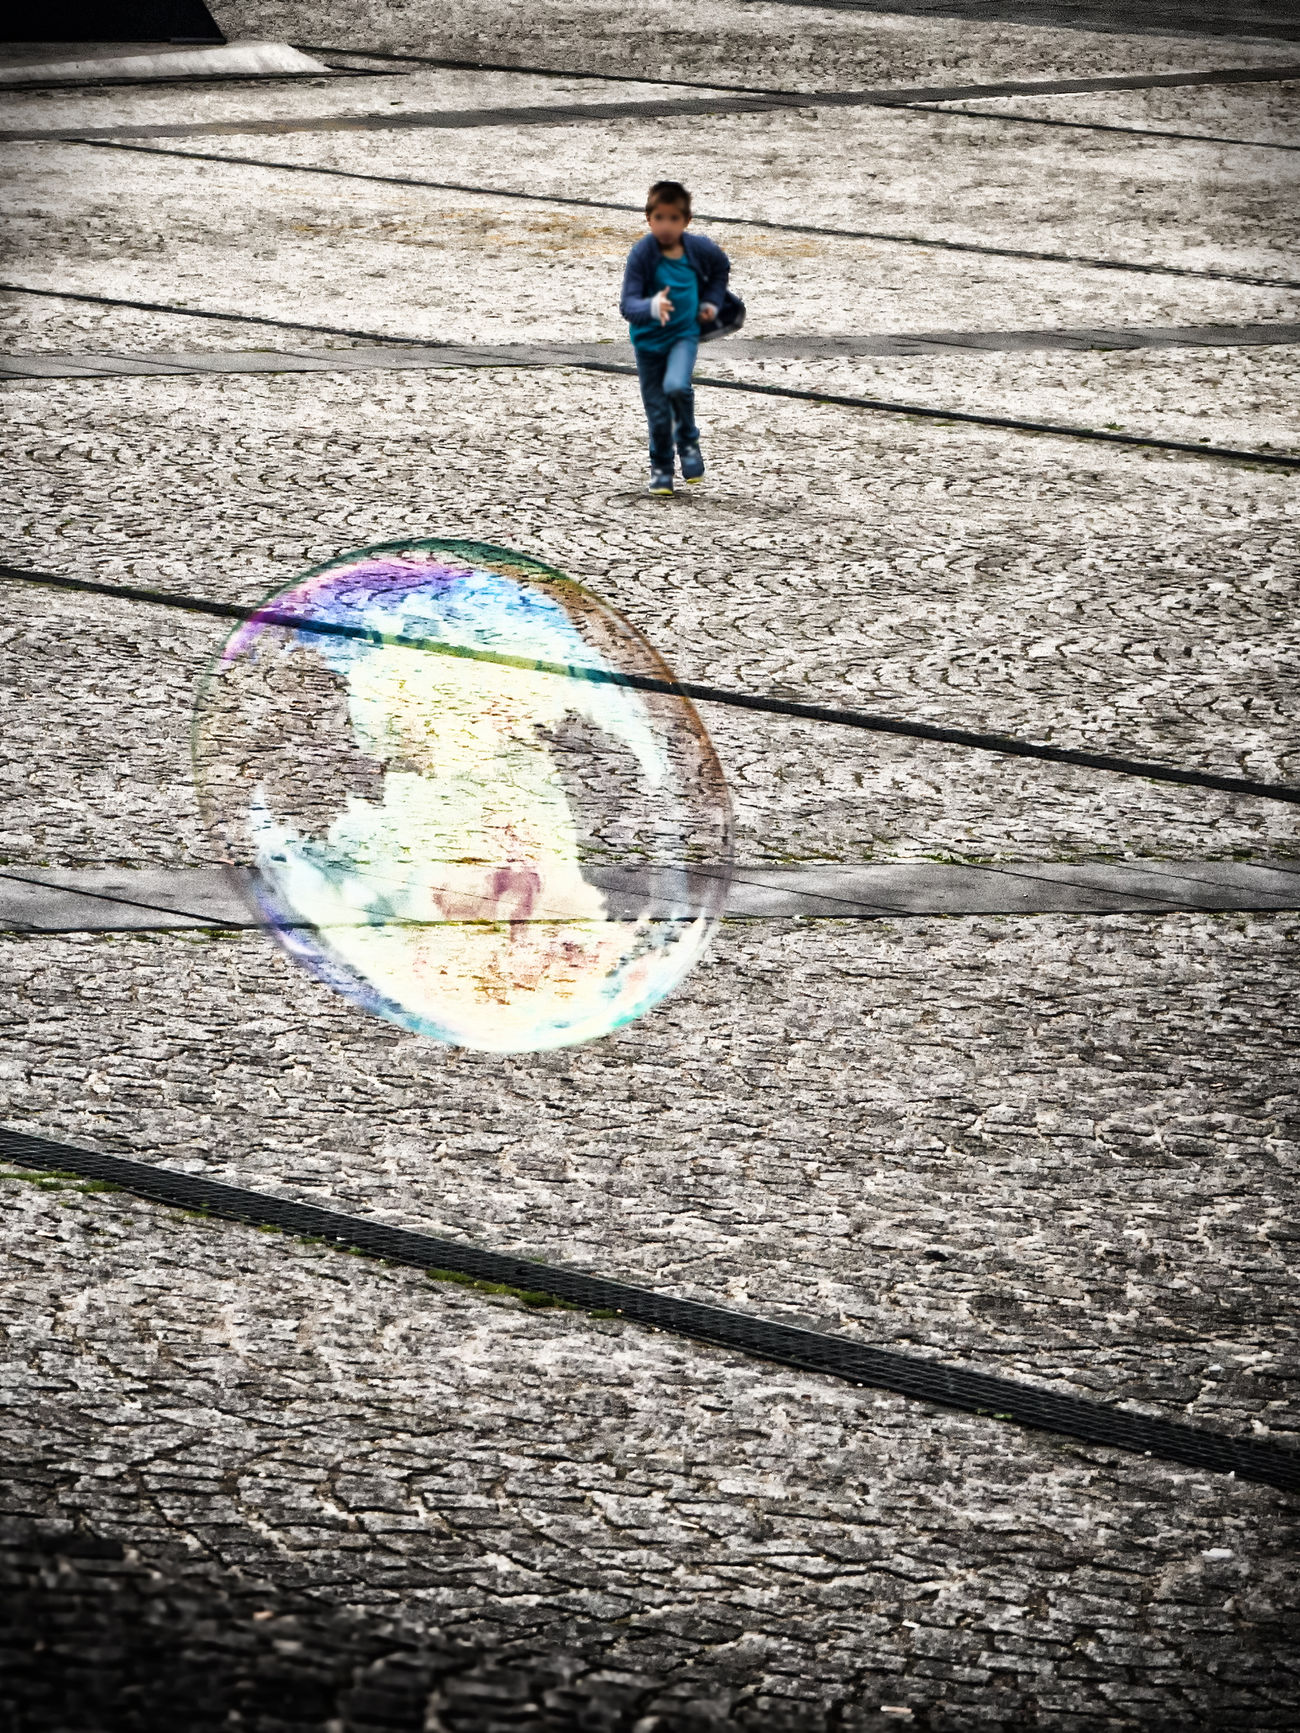 hunting the soap bubble Boy Day Full Length Junge Kid Leisure Activity Lifestyles Outdoors Rennen Running Seifenblase Soap Bubble First Eyeem Photo